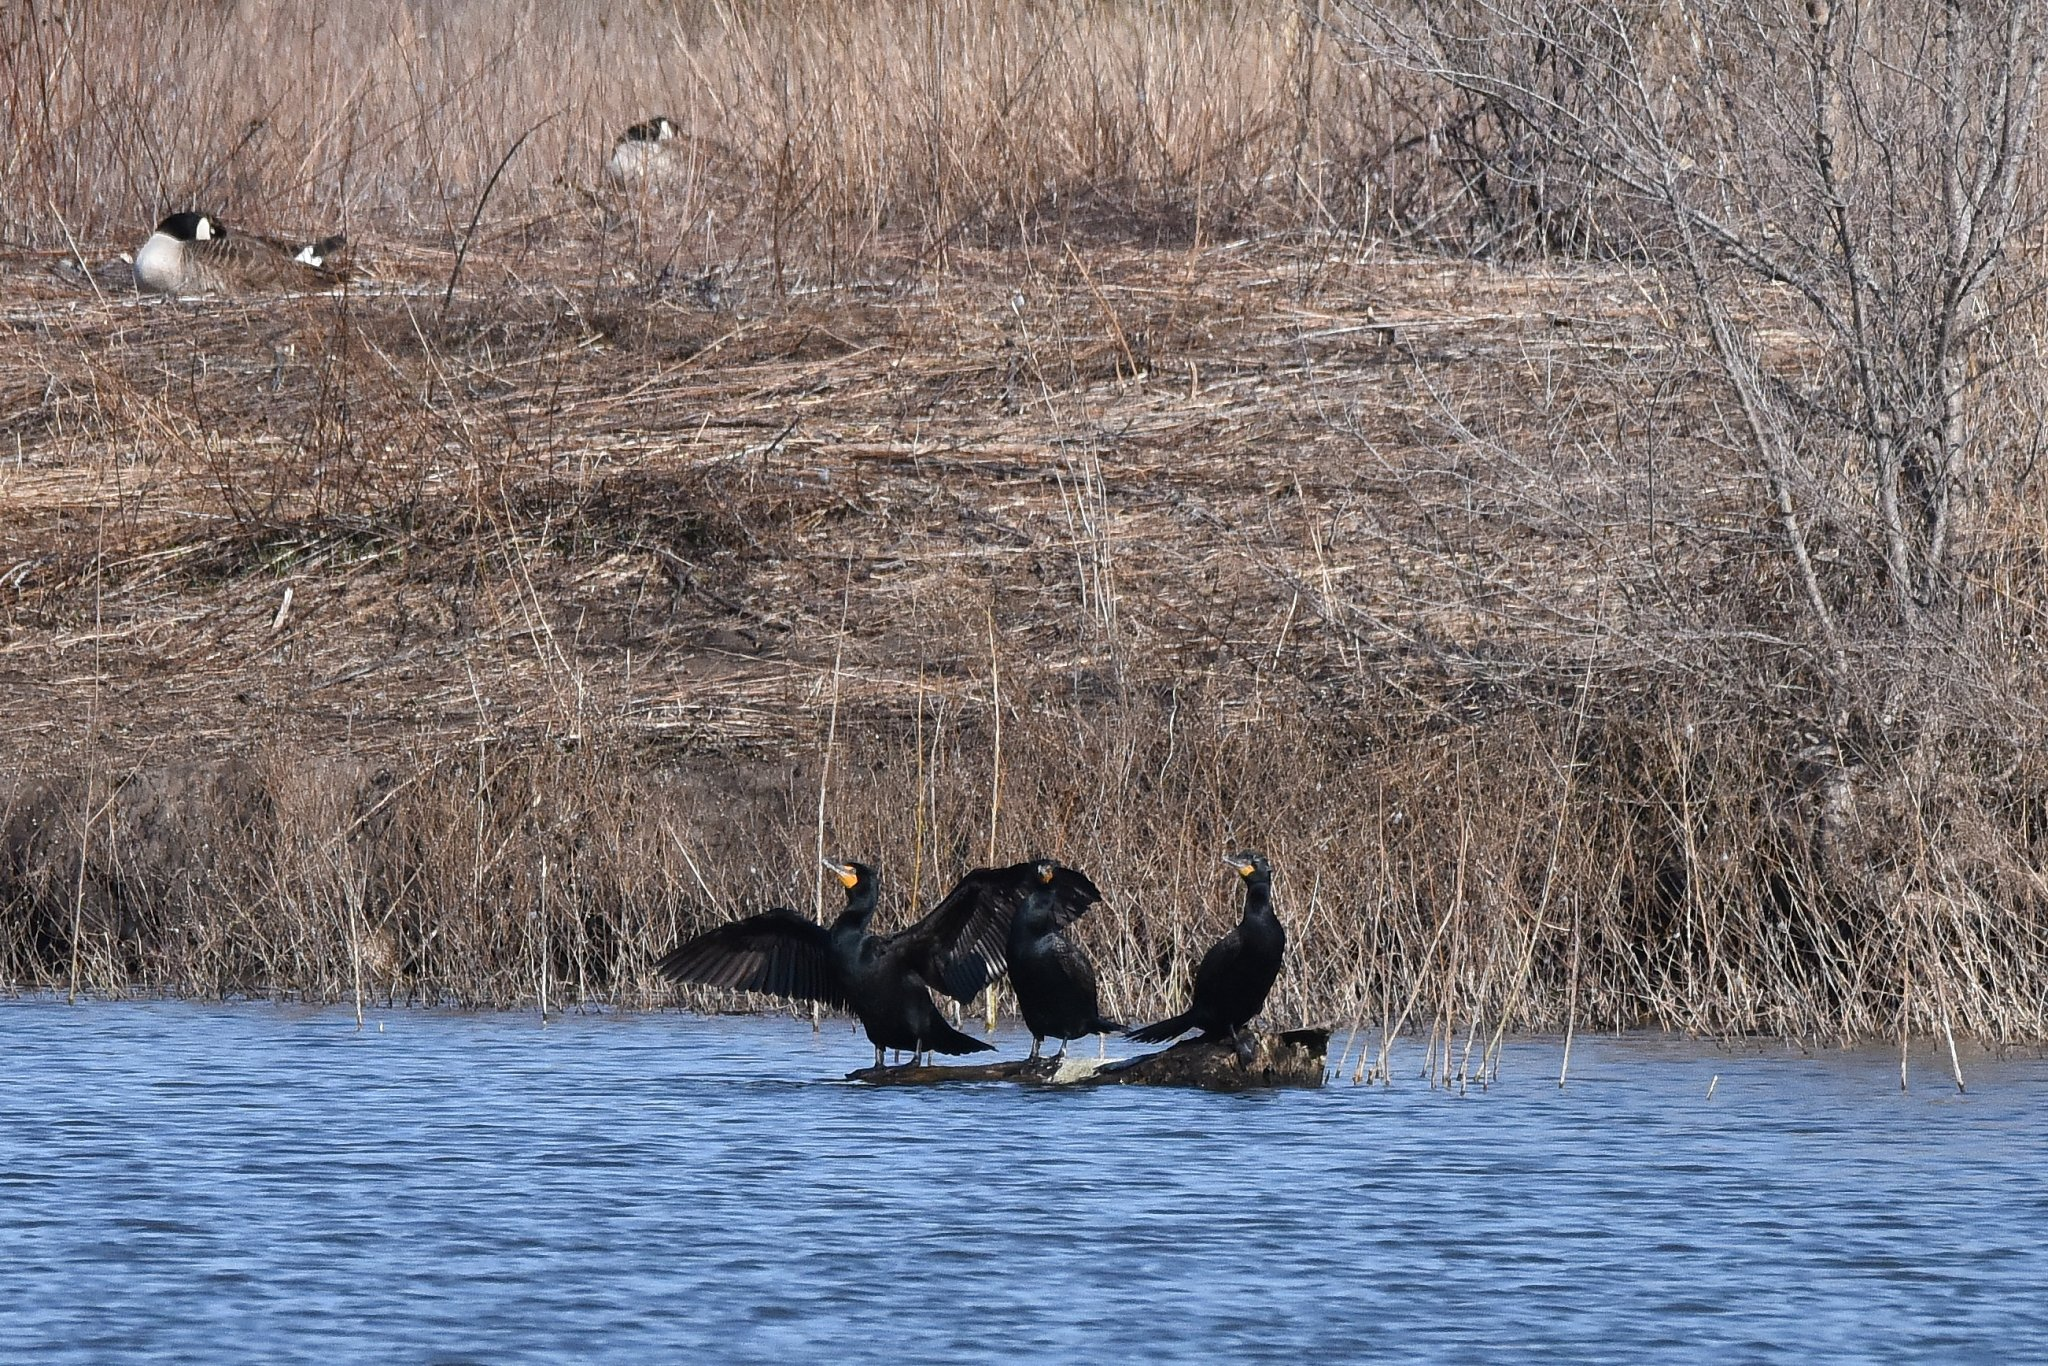 Cormorants_3_033020.JPG